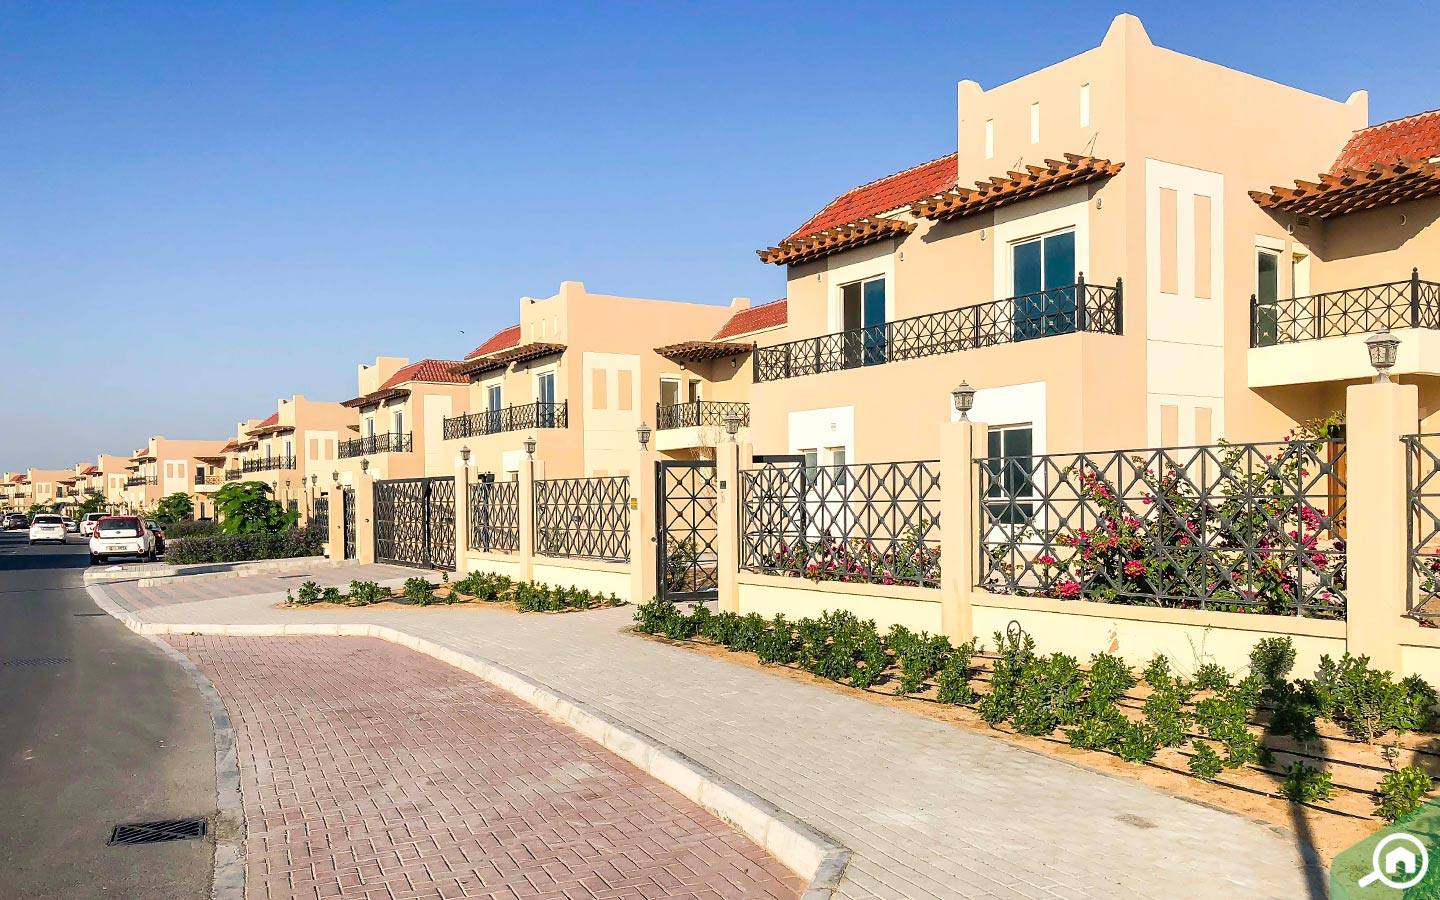 Townhouses in Dubailand